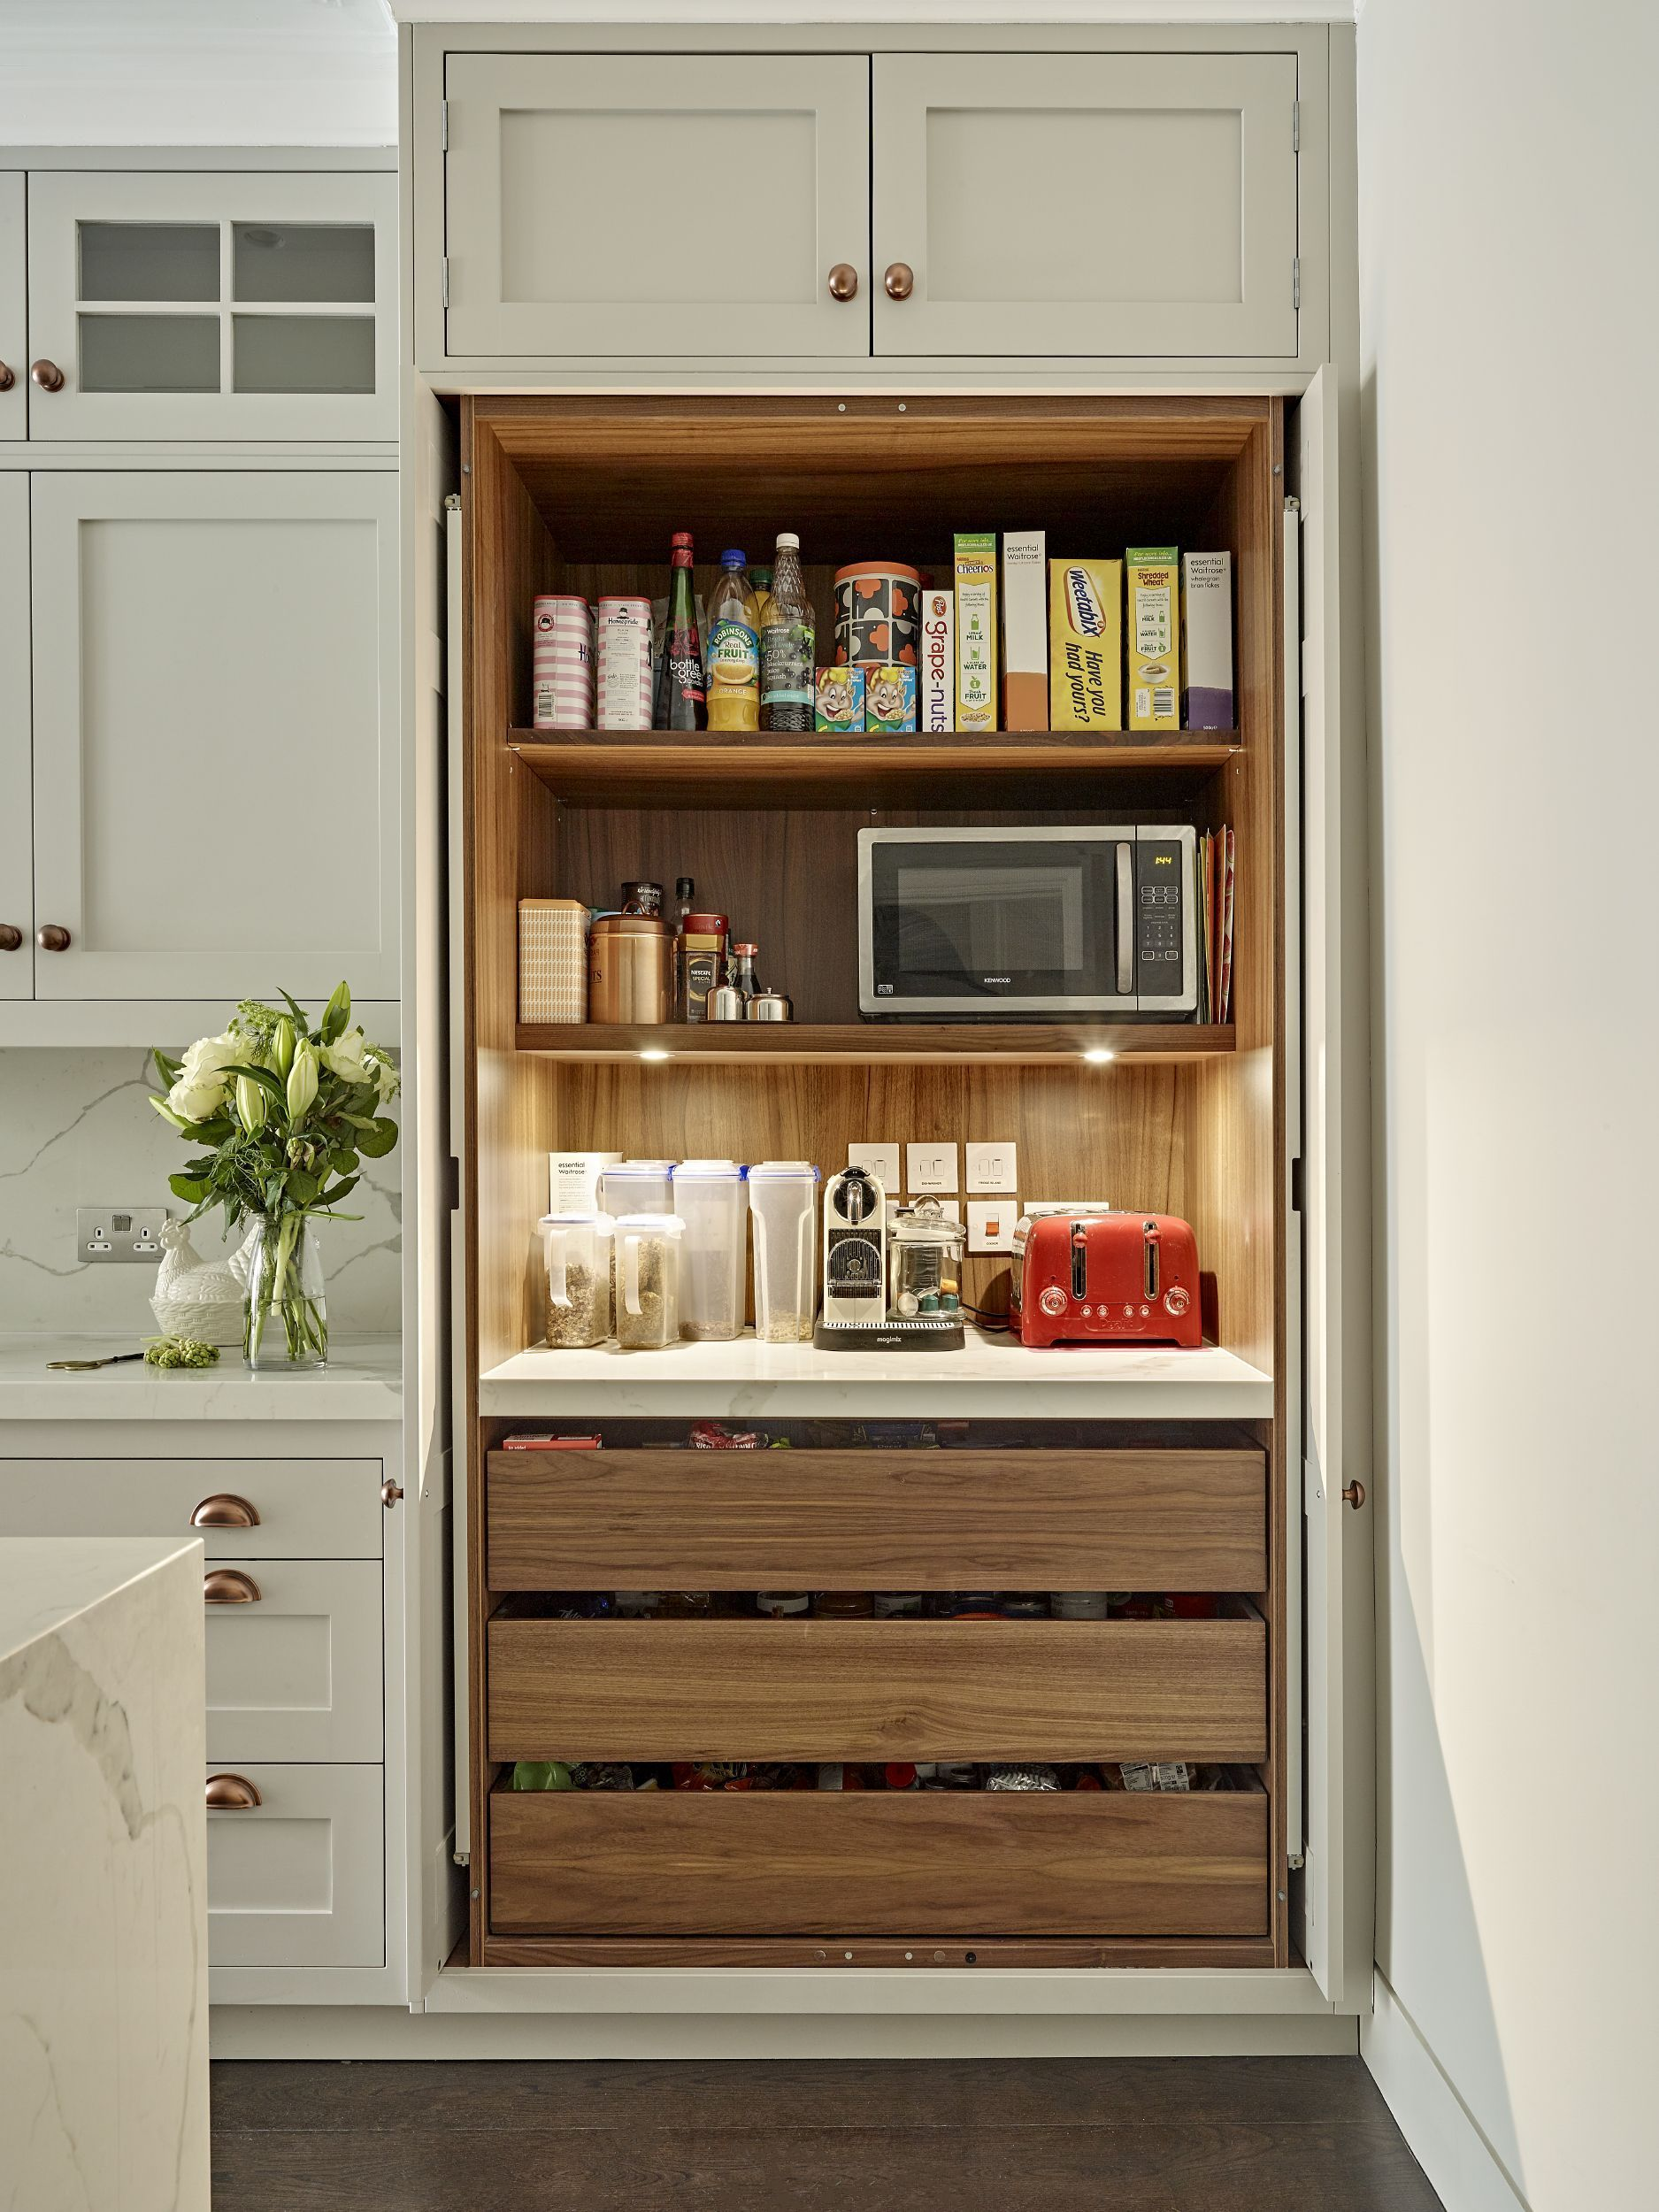 50 Awesome Kitchen Pantry Design Ideas Rustic Antique Bifold Vintage Pantry Design Ideas Conce Kitchen Design Plans Kitchen Remodel Small Kitchen Design